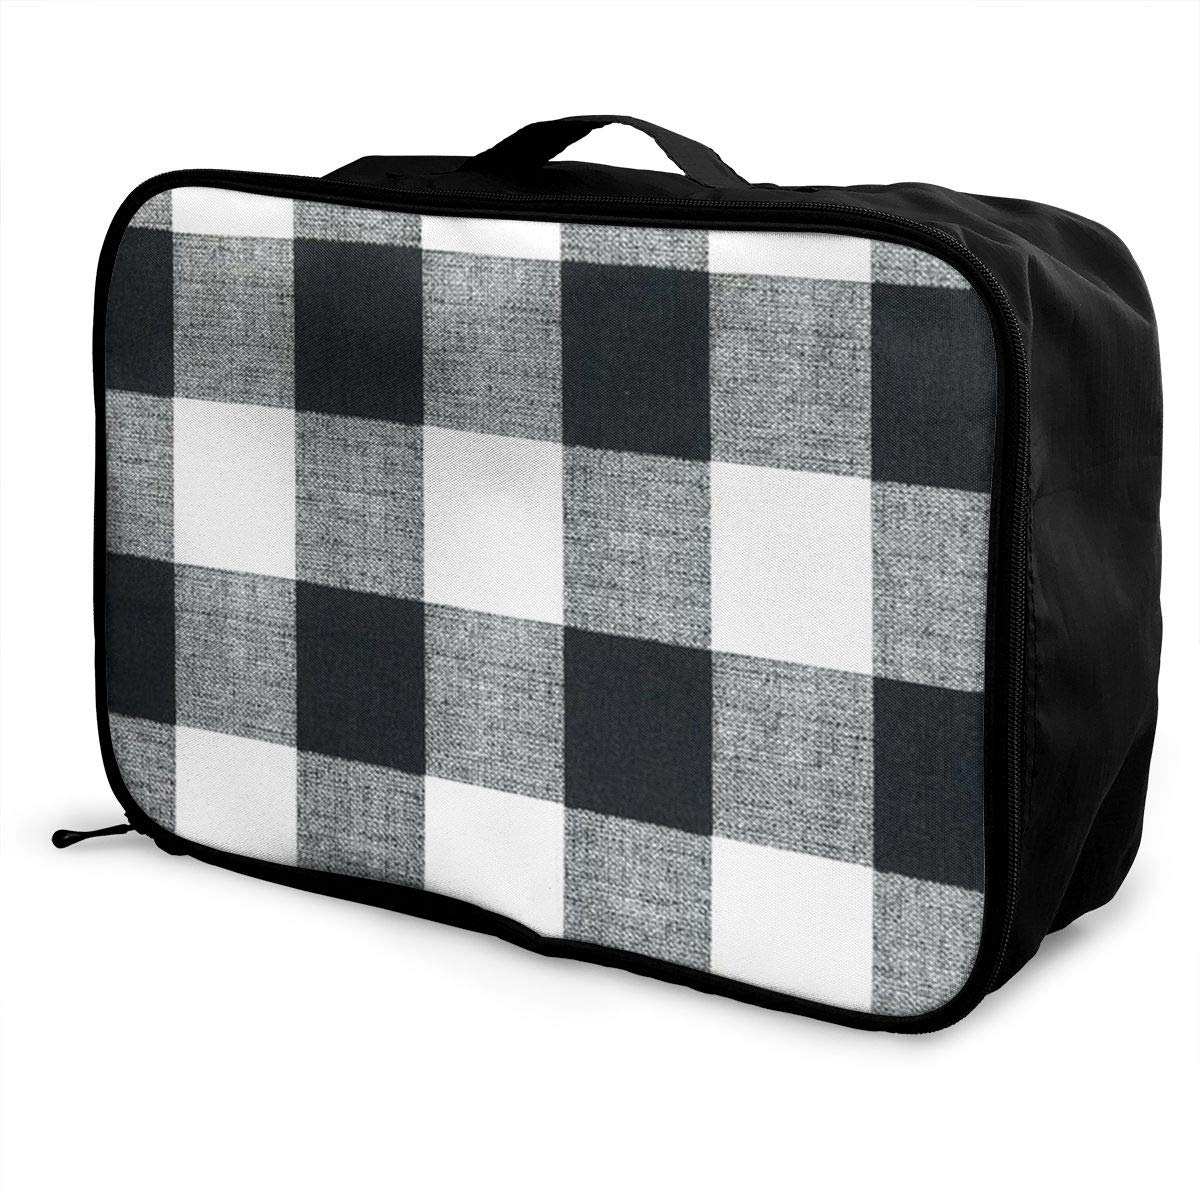 ADGAI Black and White Plaid Canvas Travel Weekender Bag,Fashion Custom Lightweight Large Capacity Portable Luggage Bag,Suitcase Trolley Bag